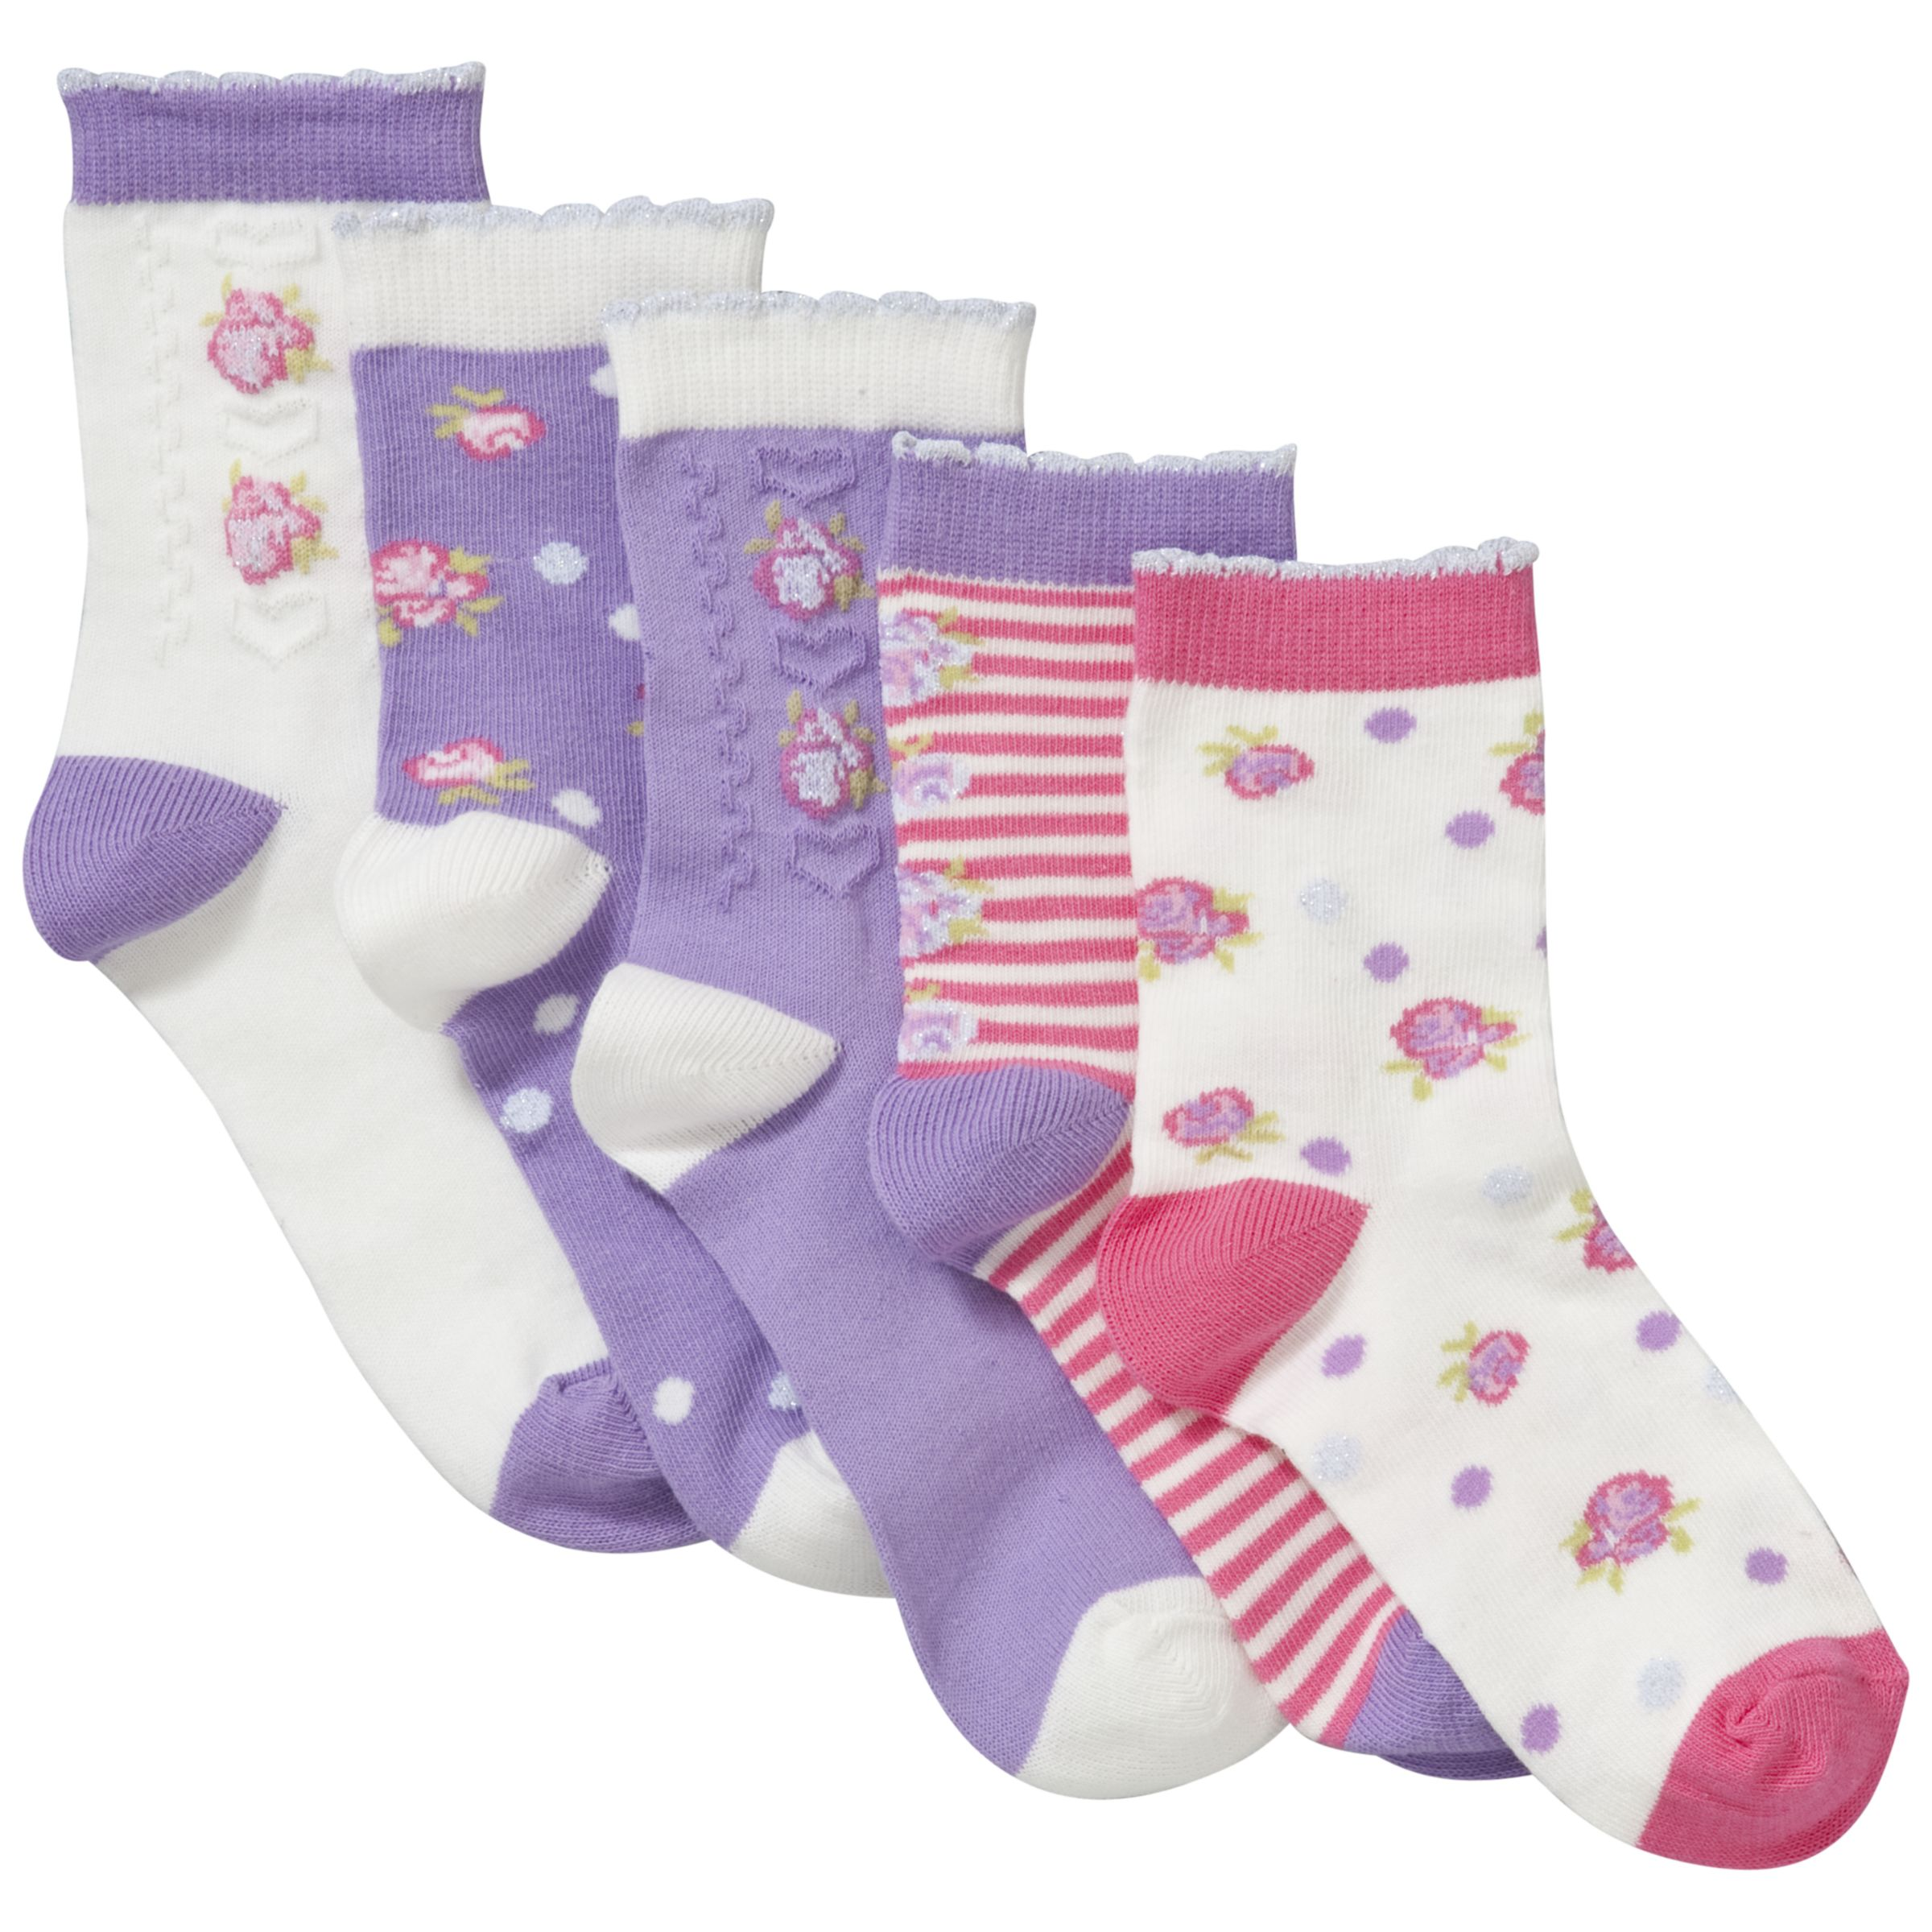 John Lewis Wedding Gift List Review : John Lewis Girl Vintage Flower Socks, Pink/Purple